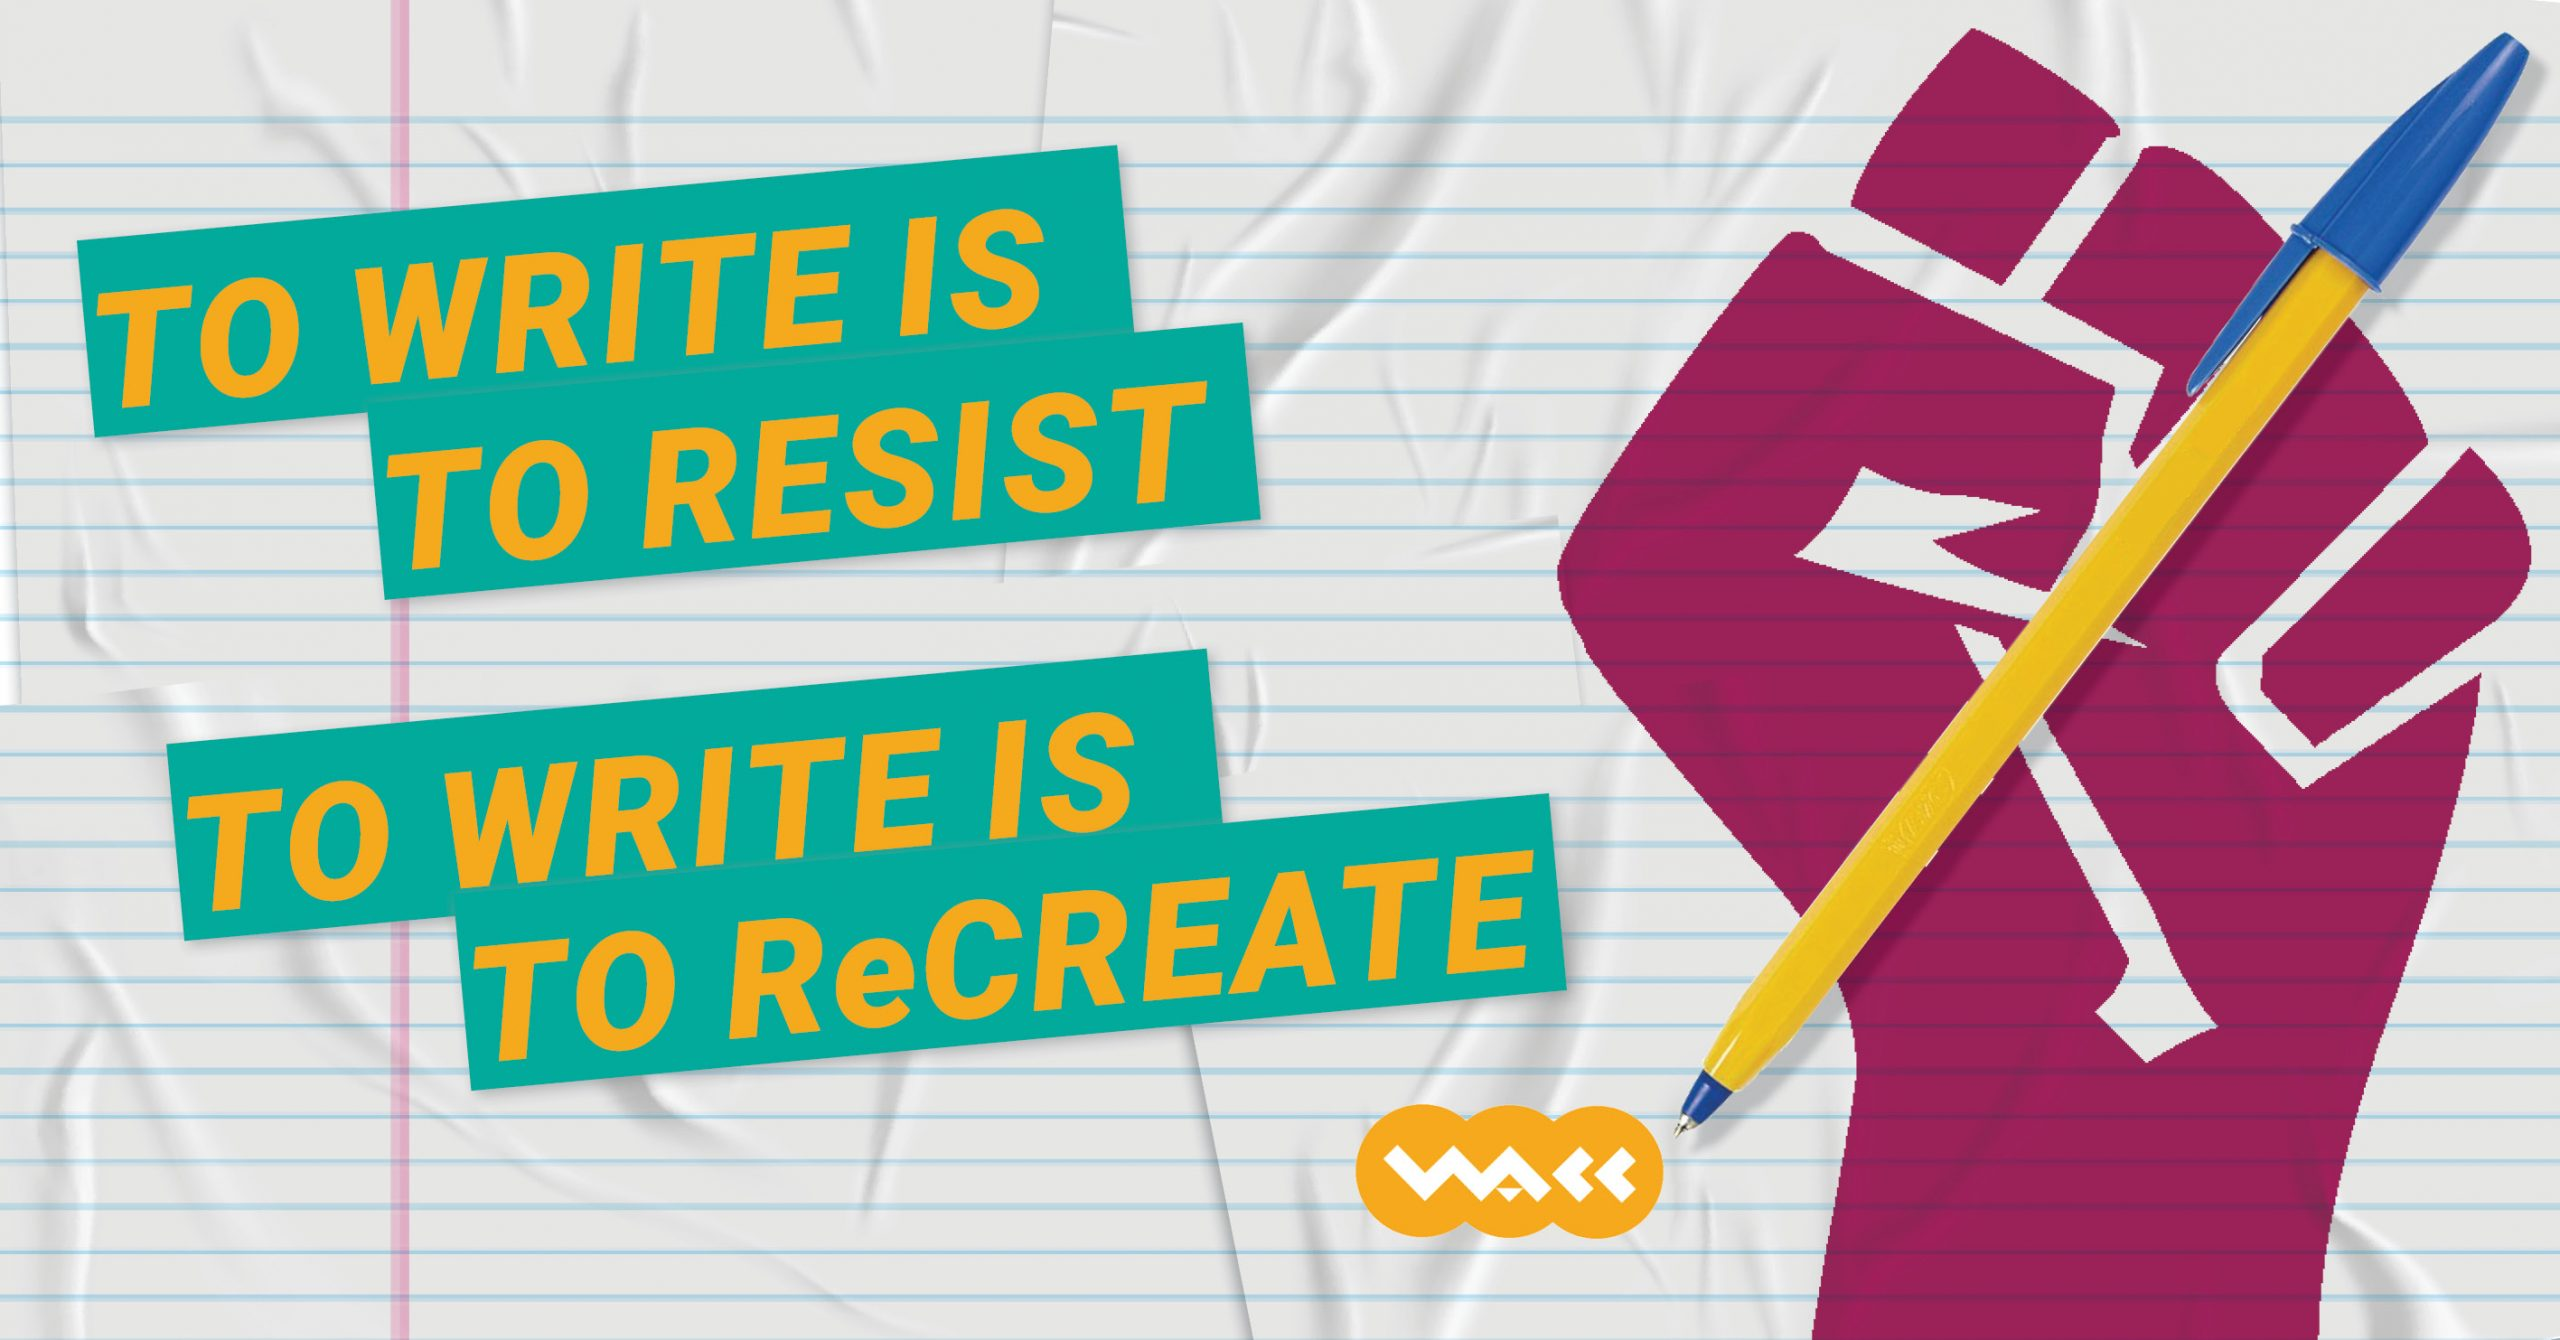 To Write is to Resist